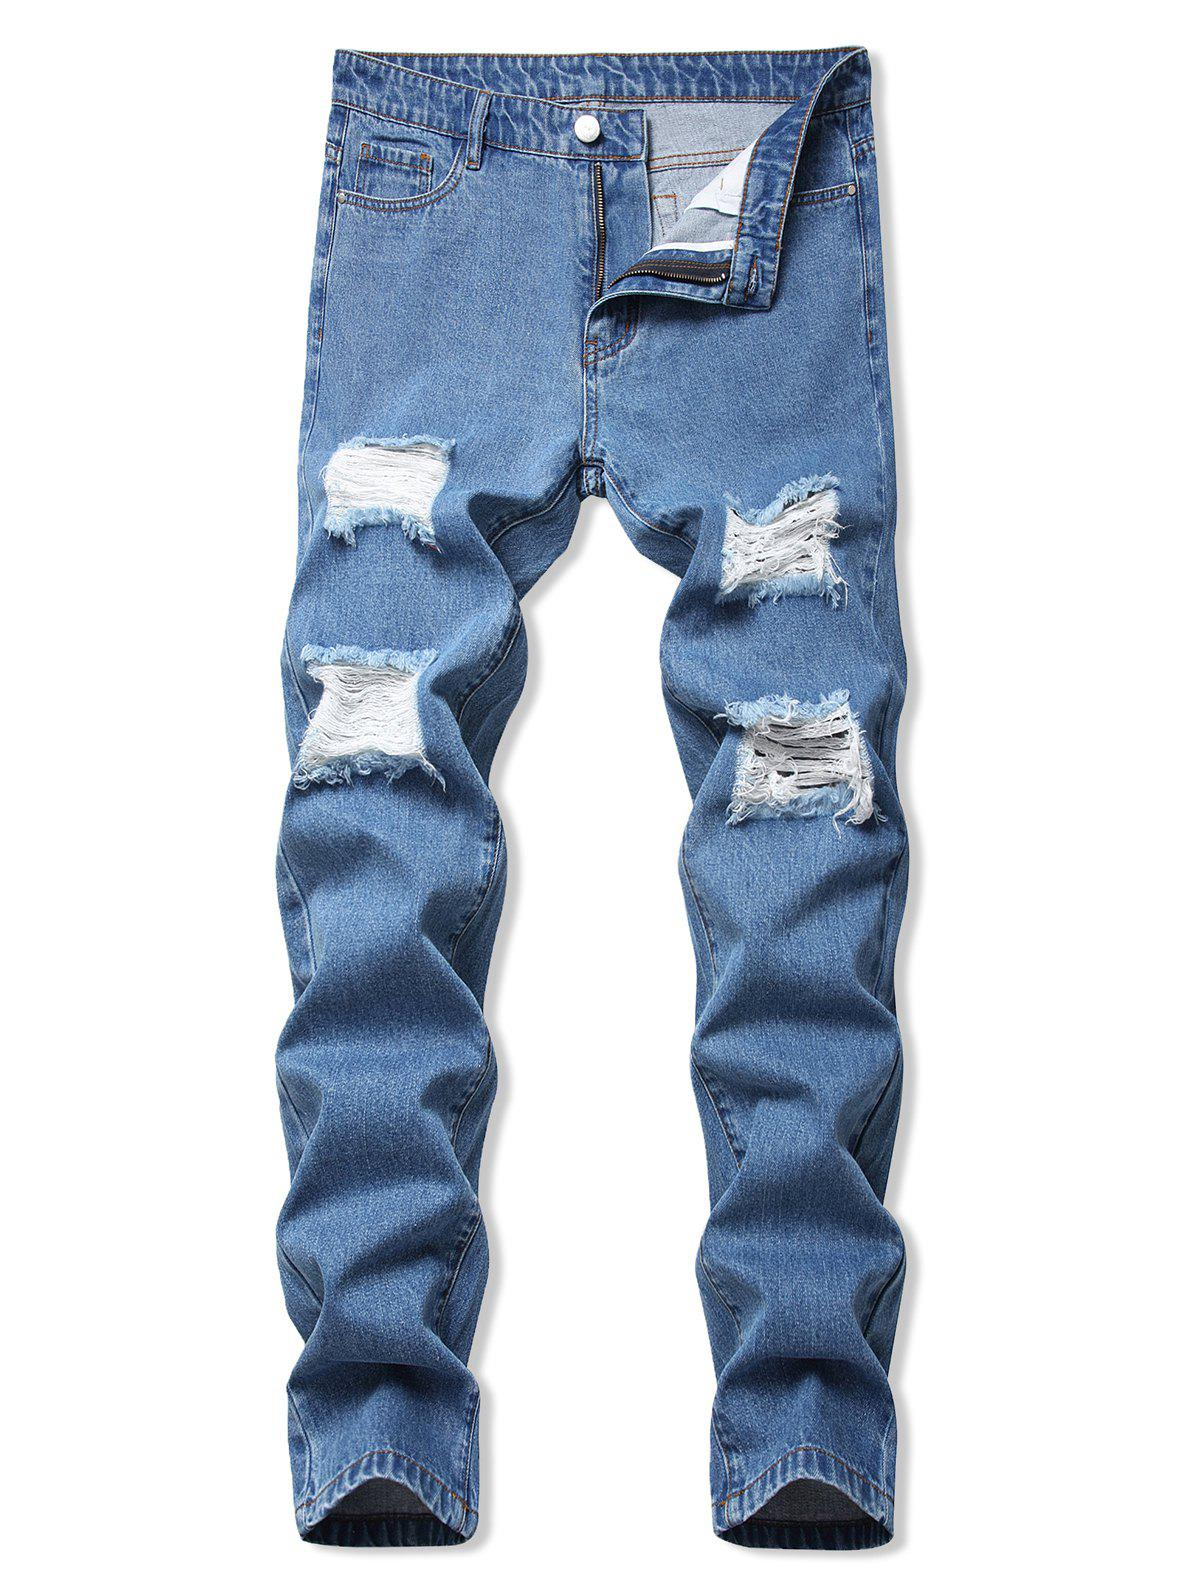 Zipper Fly Ladder Distressed Jeans - BLUE 32